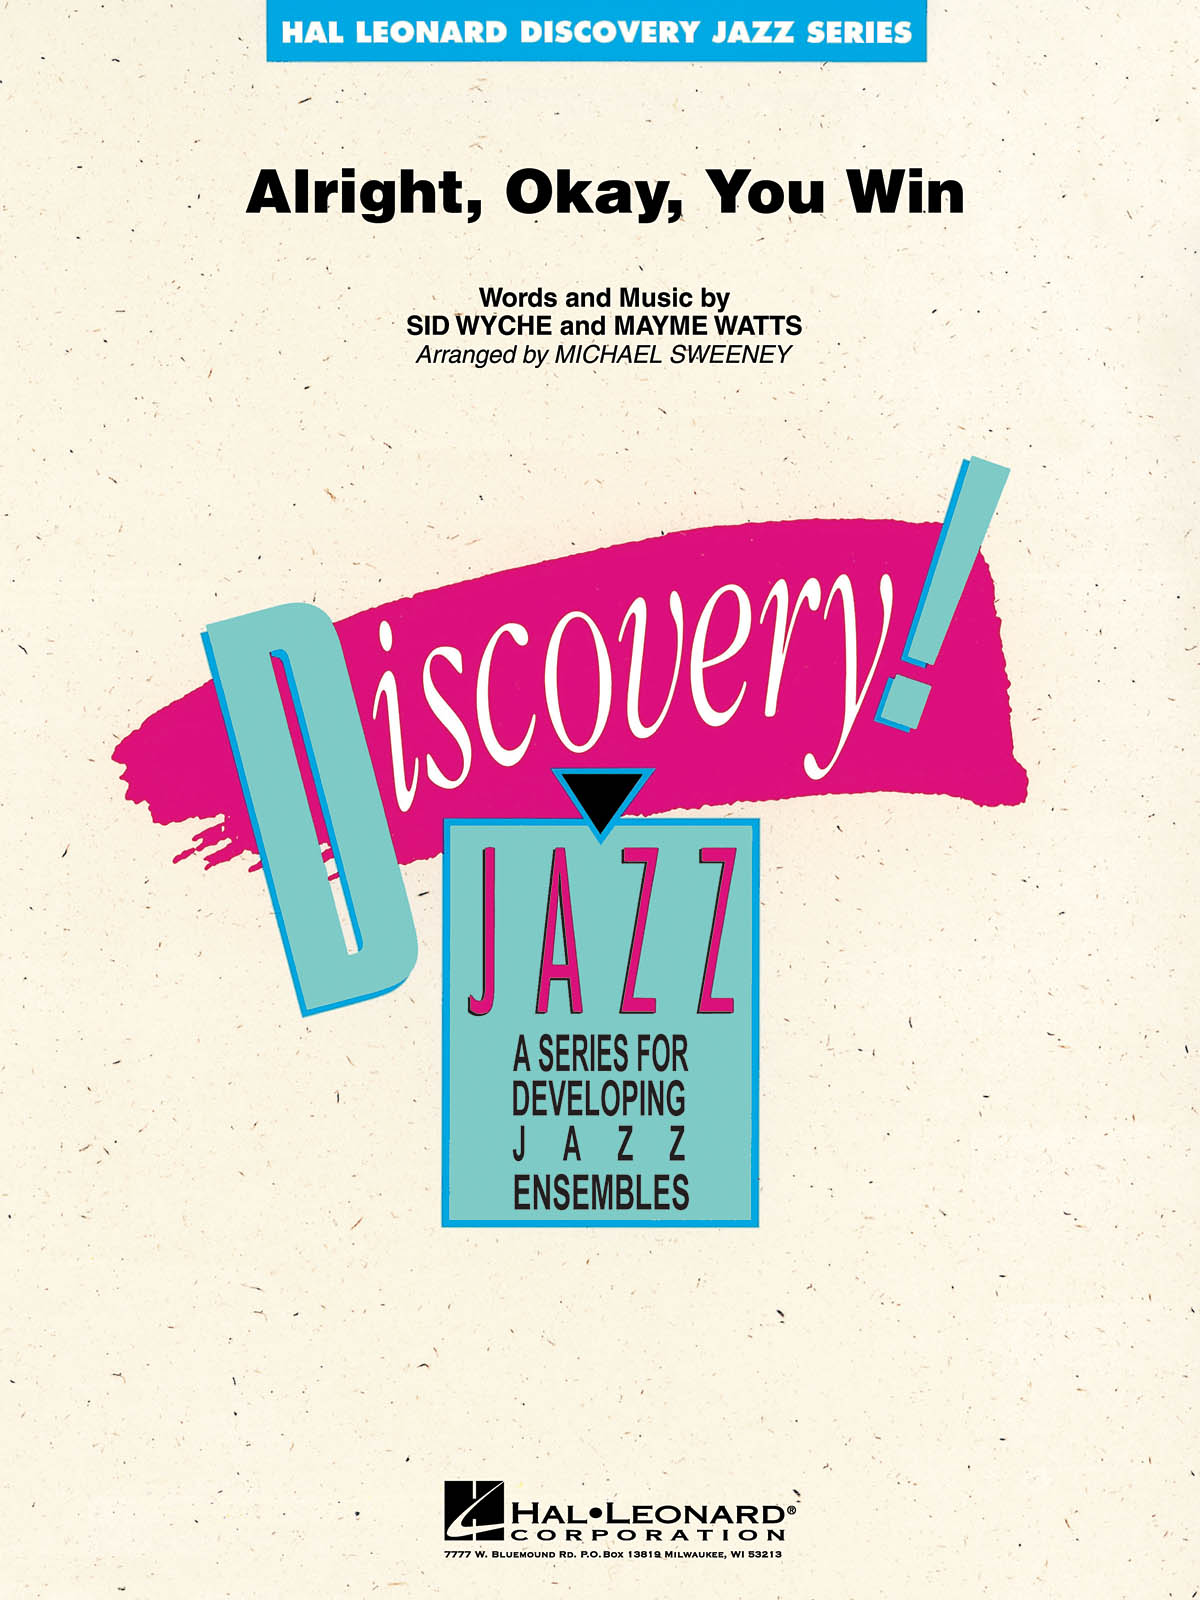 Alright, Okay, You Win: Discovery Jazz